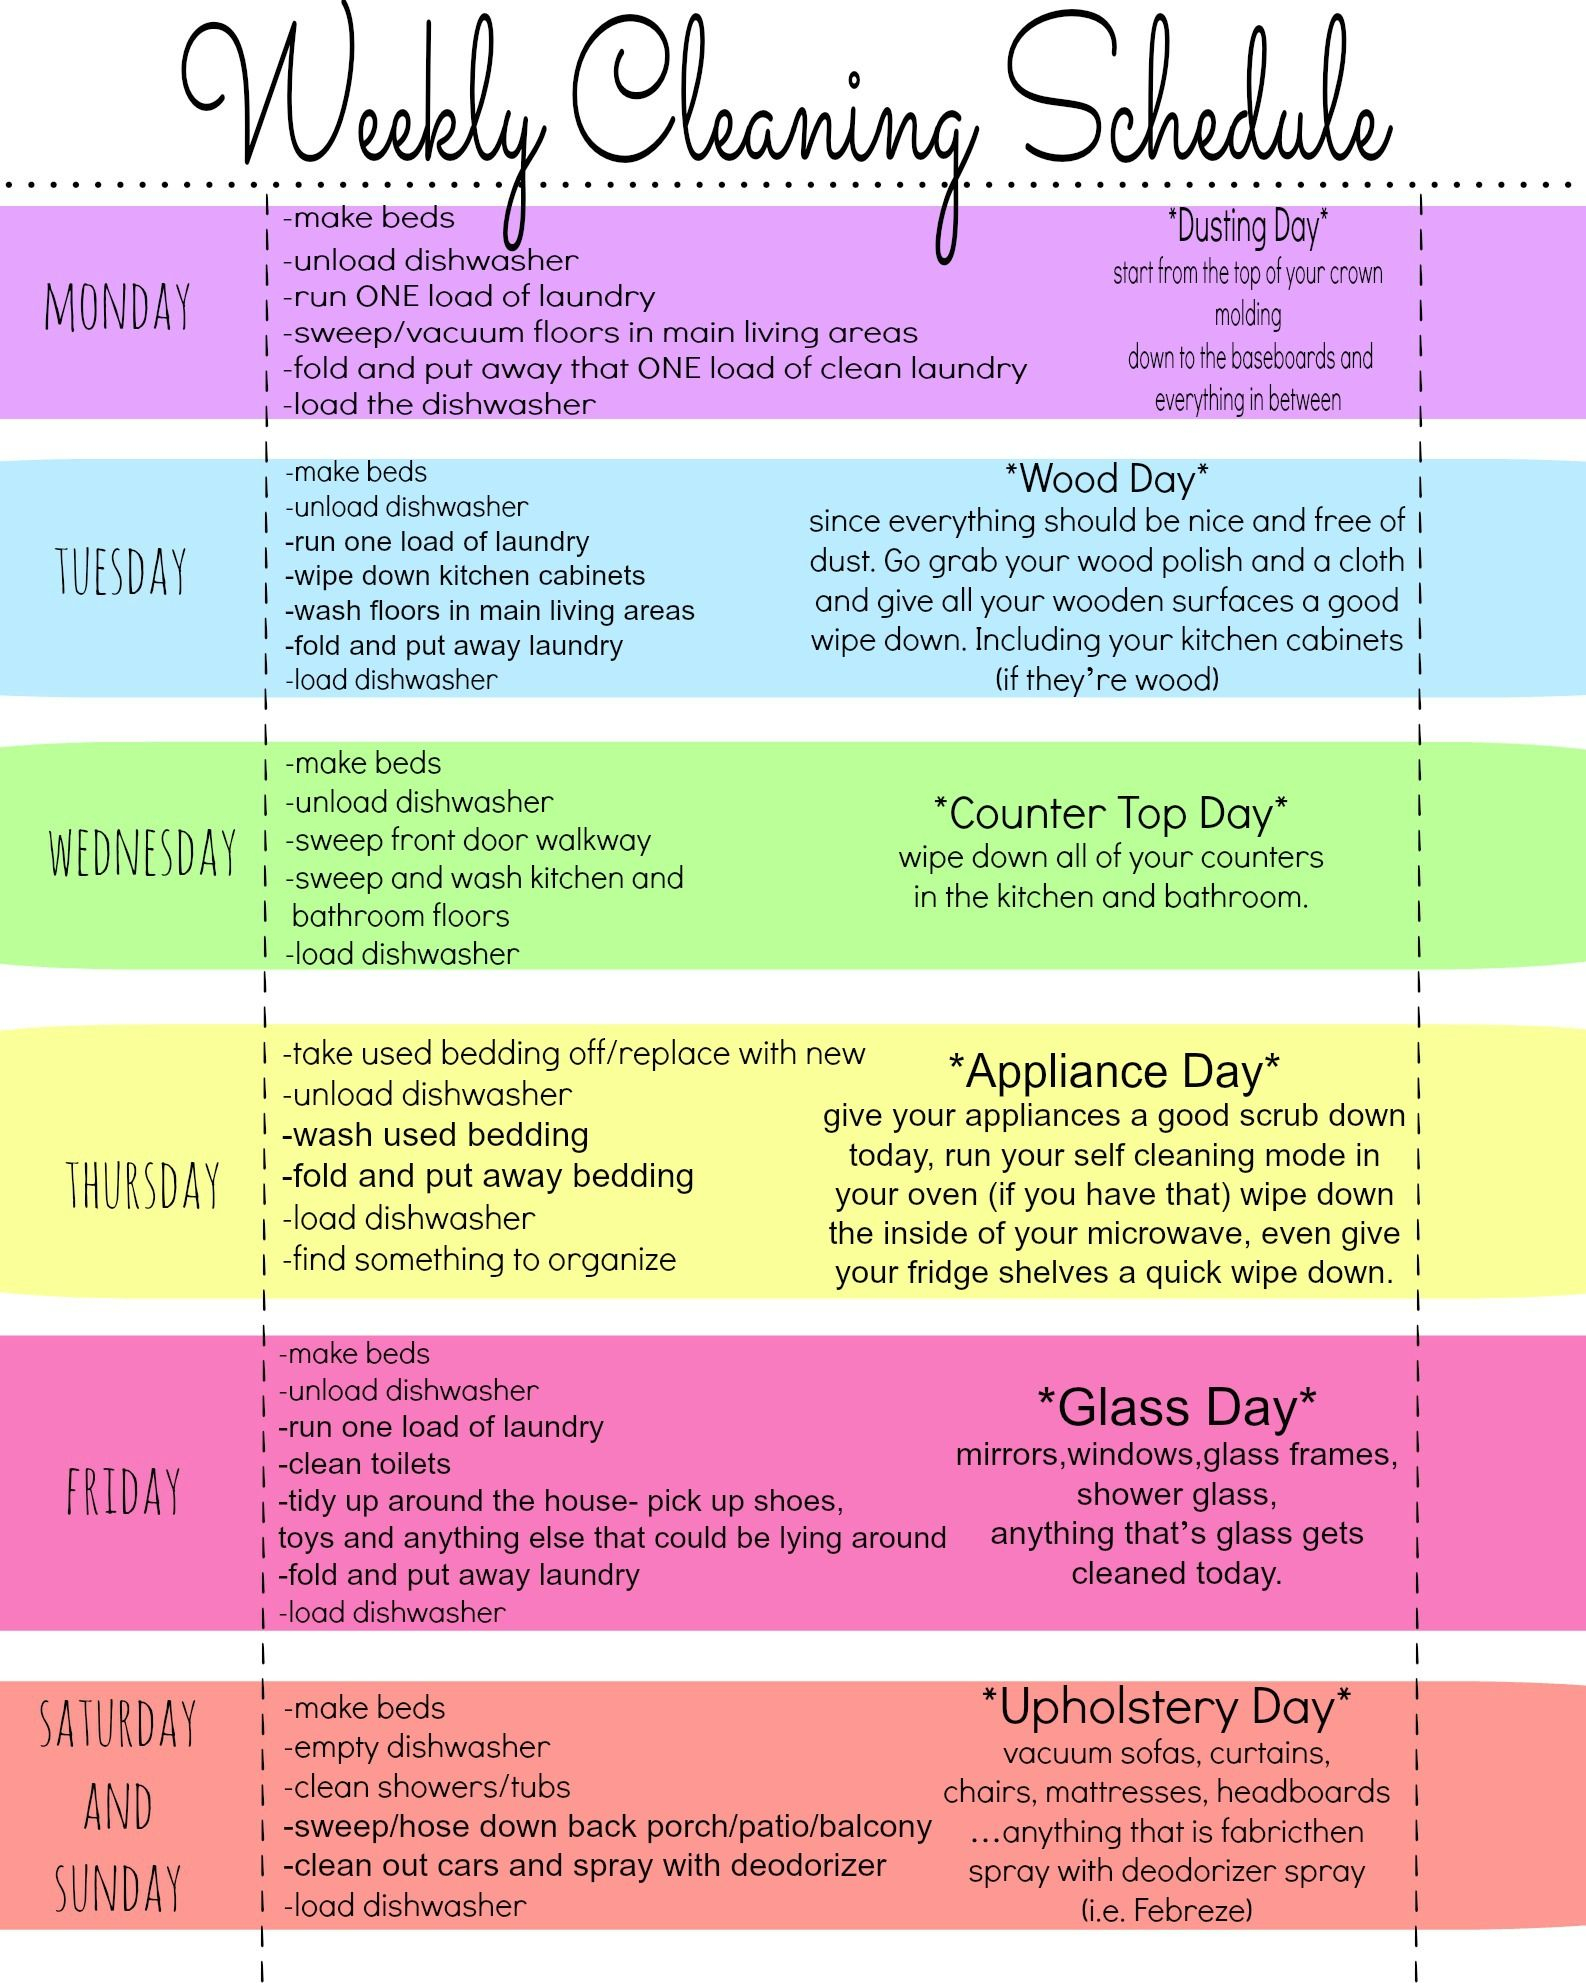 My Quirky Weekly Cleaning Chart: Free Printable | Cleaning Tips - Free Printable Housework Checklist